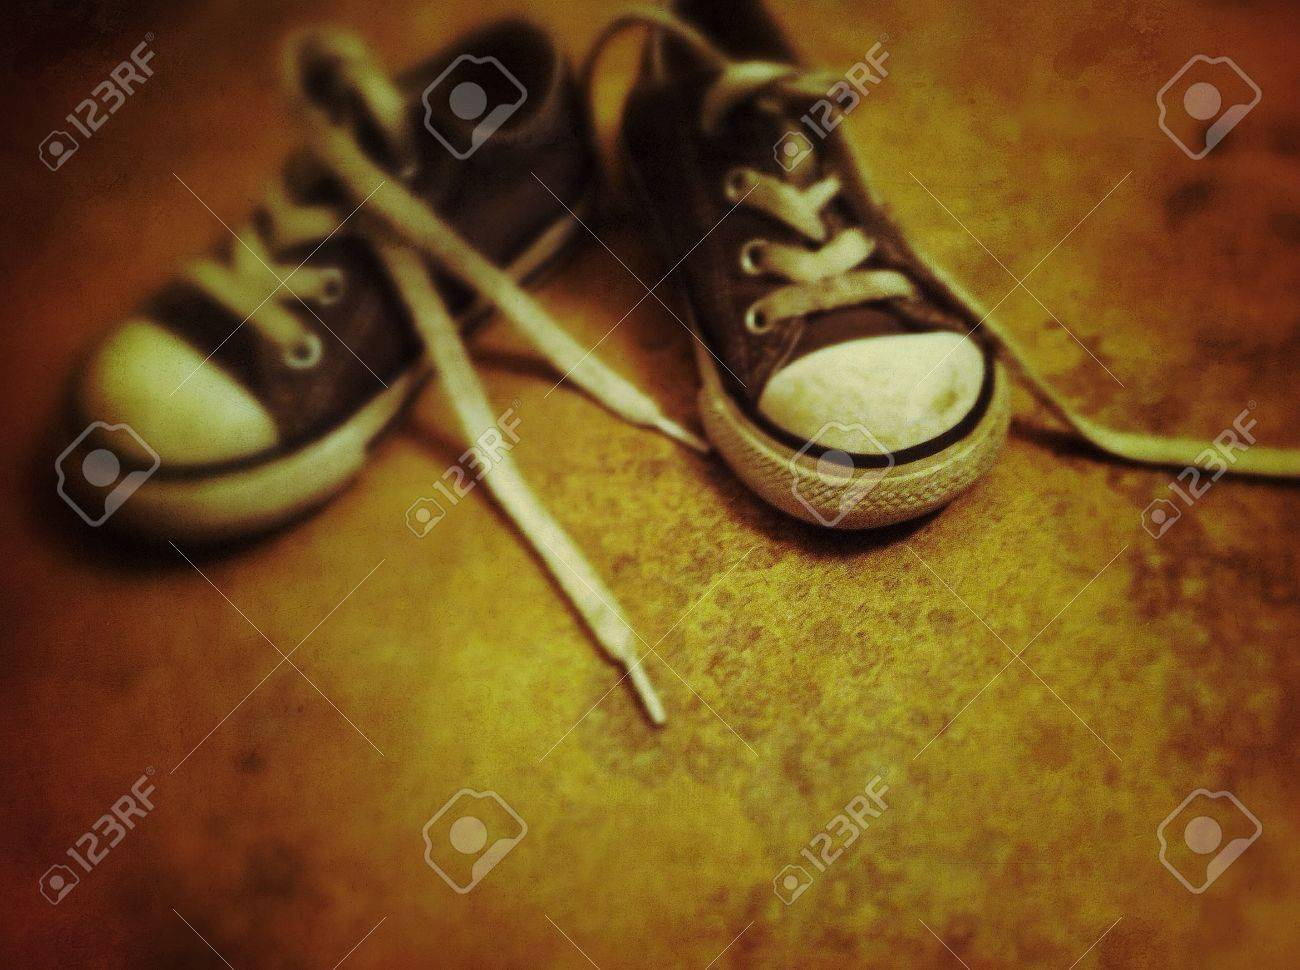 07e4716c04db Stock Photo - Worn out converse all stars